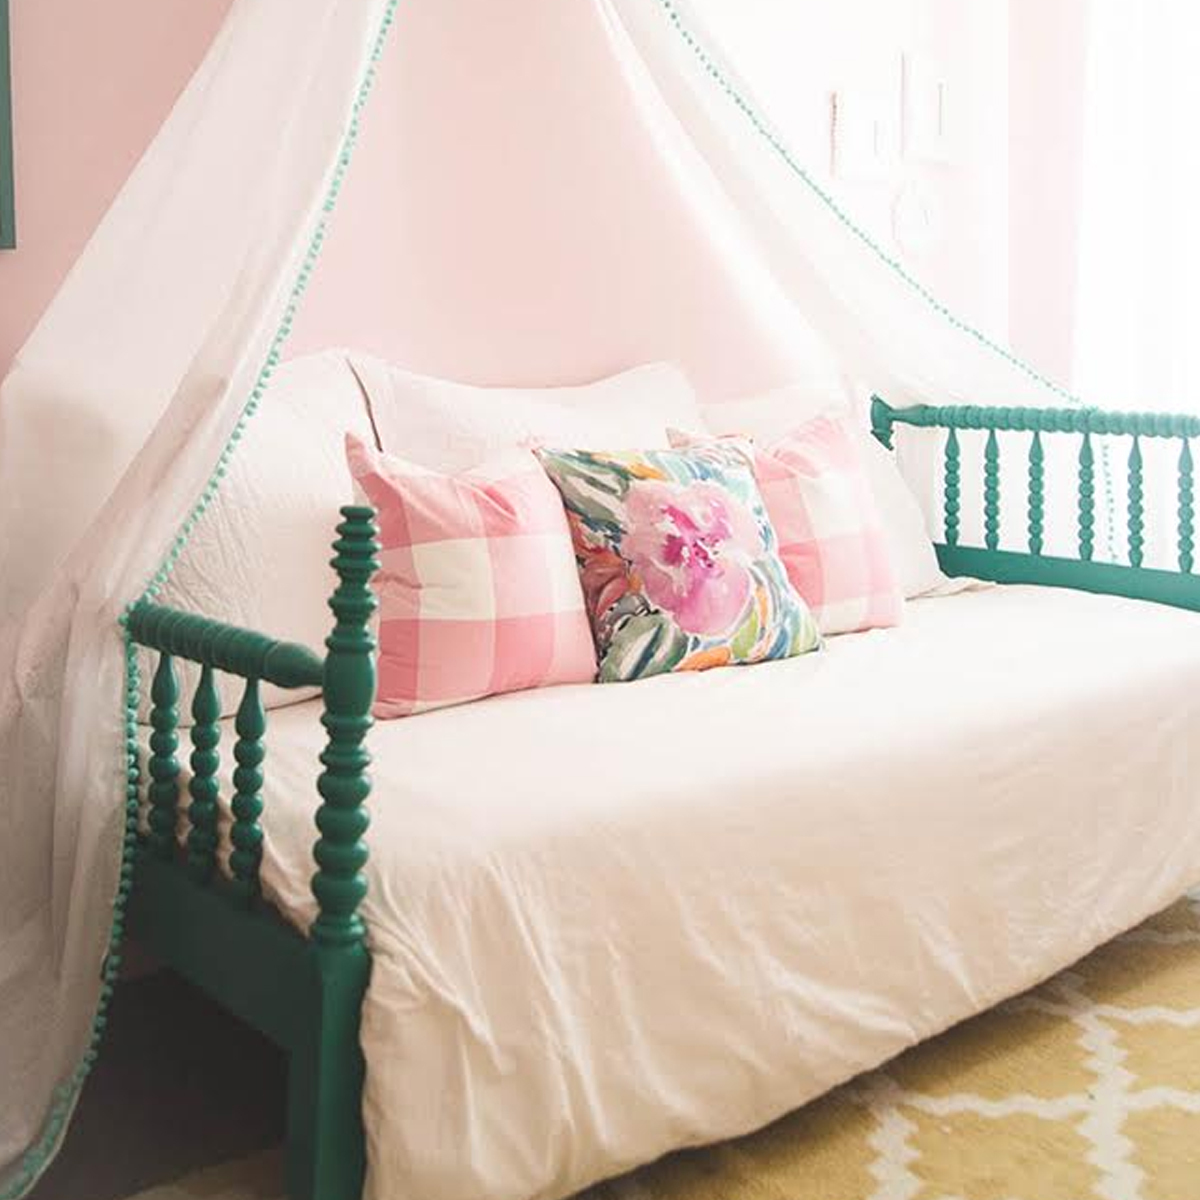 Girly daybed with pink throw pillows photo